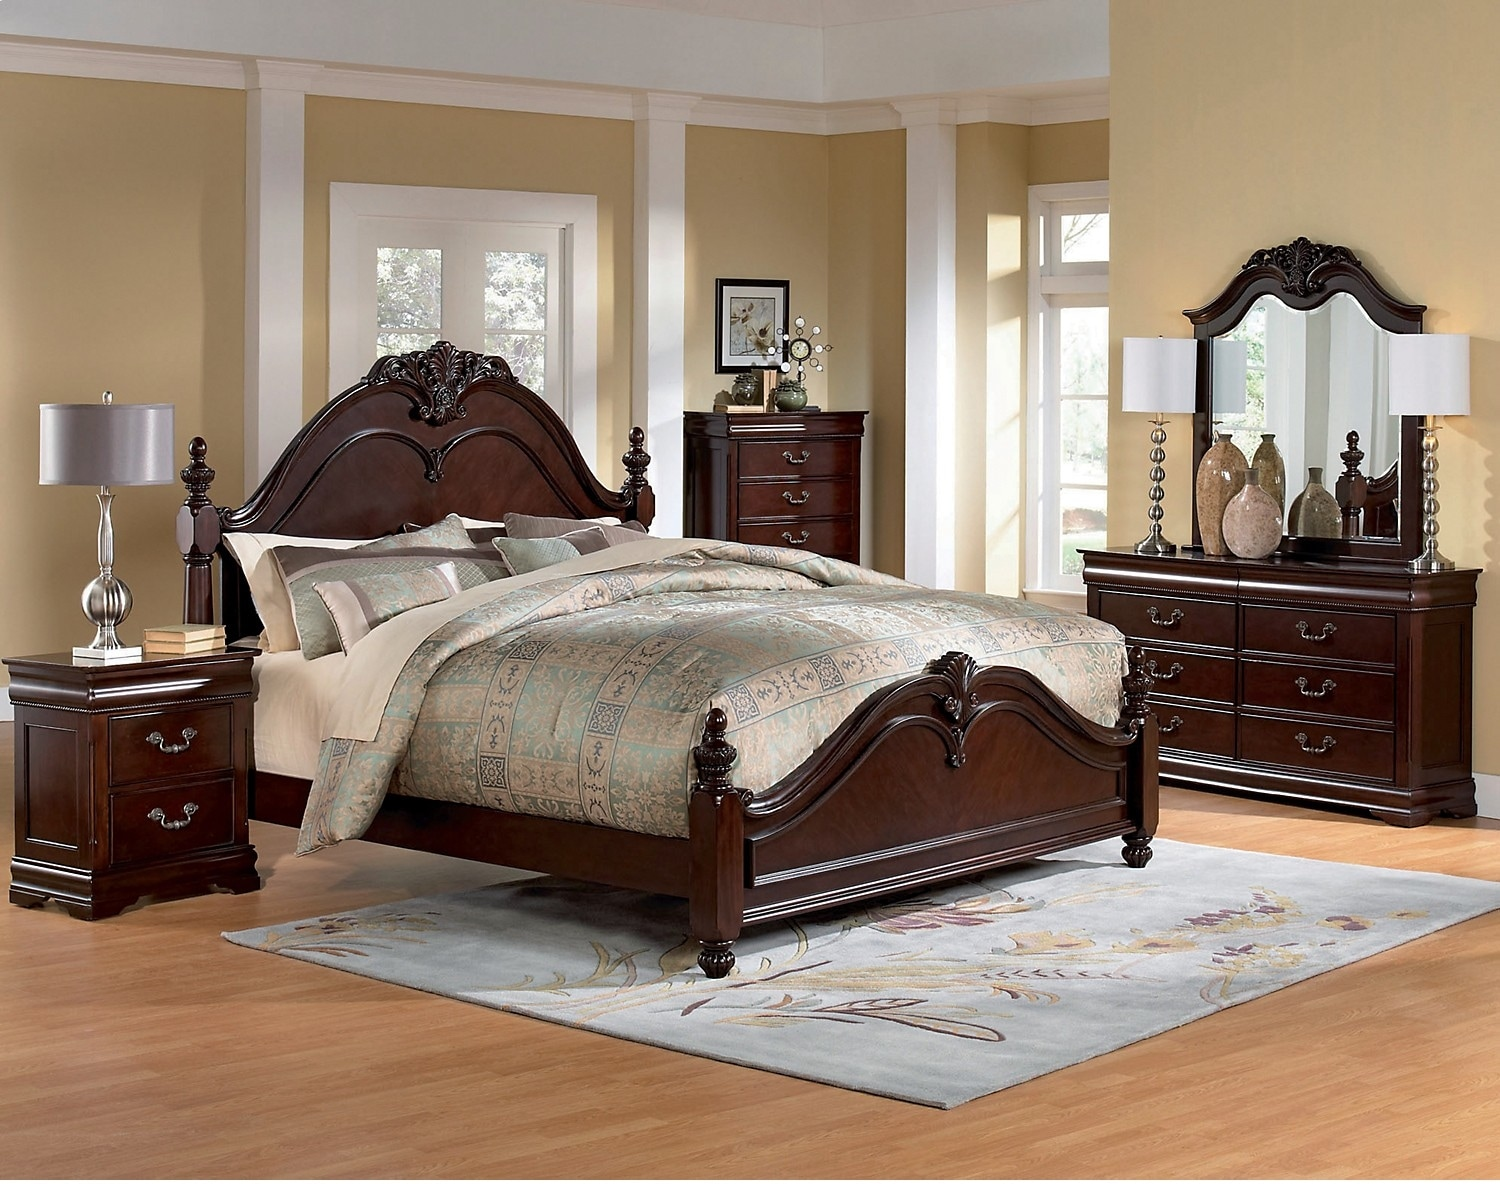 Westchester 6 piece queen bedroom set the brick for Bedroom 6 piece set